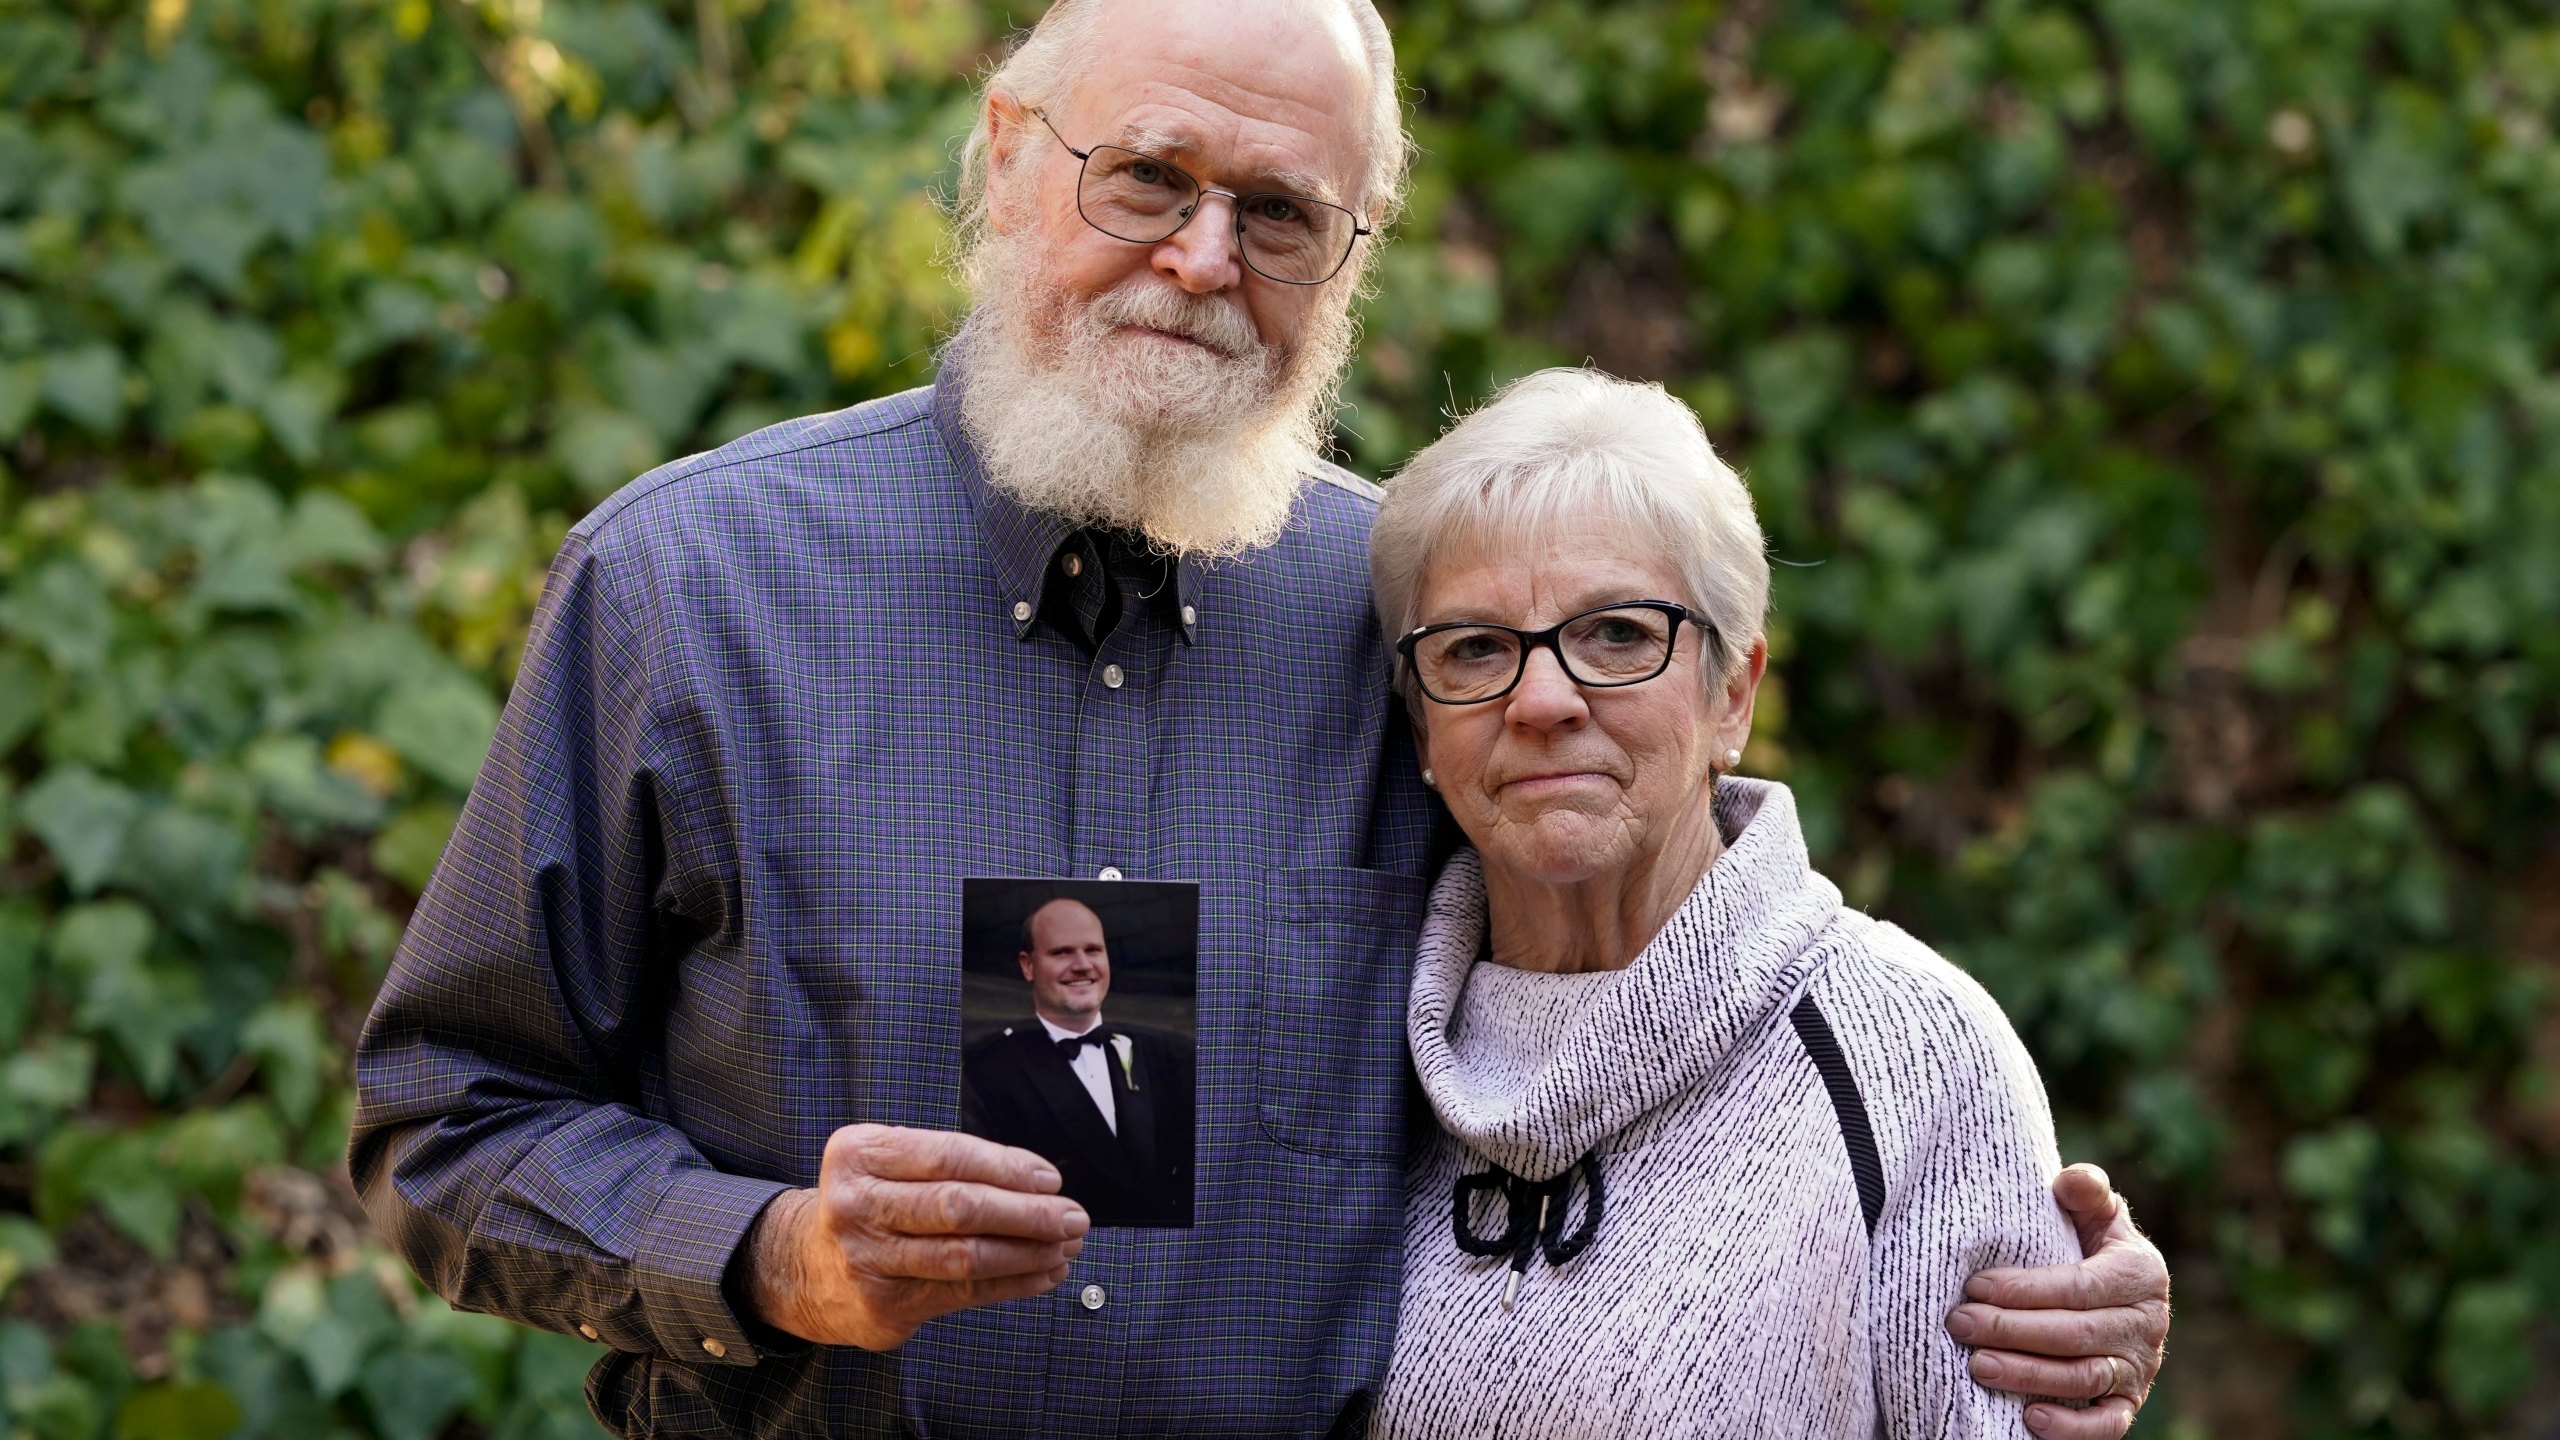 Clark McIlvain and Kathleen McIlvain hold a photo of their son, Charles McIlvain, at their home in Woodland Hills on Dec. 3, 2020. (Ashley Landis / Associated Press)